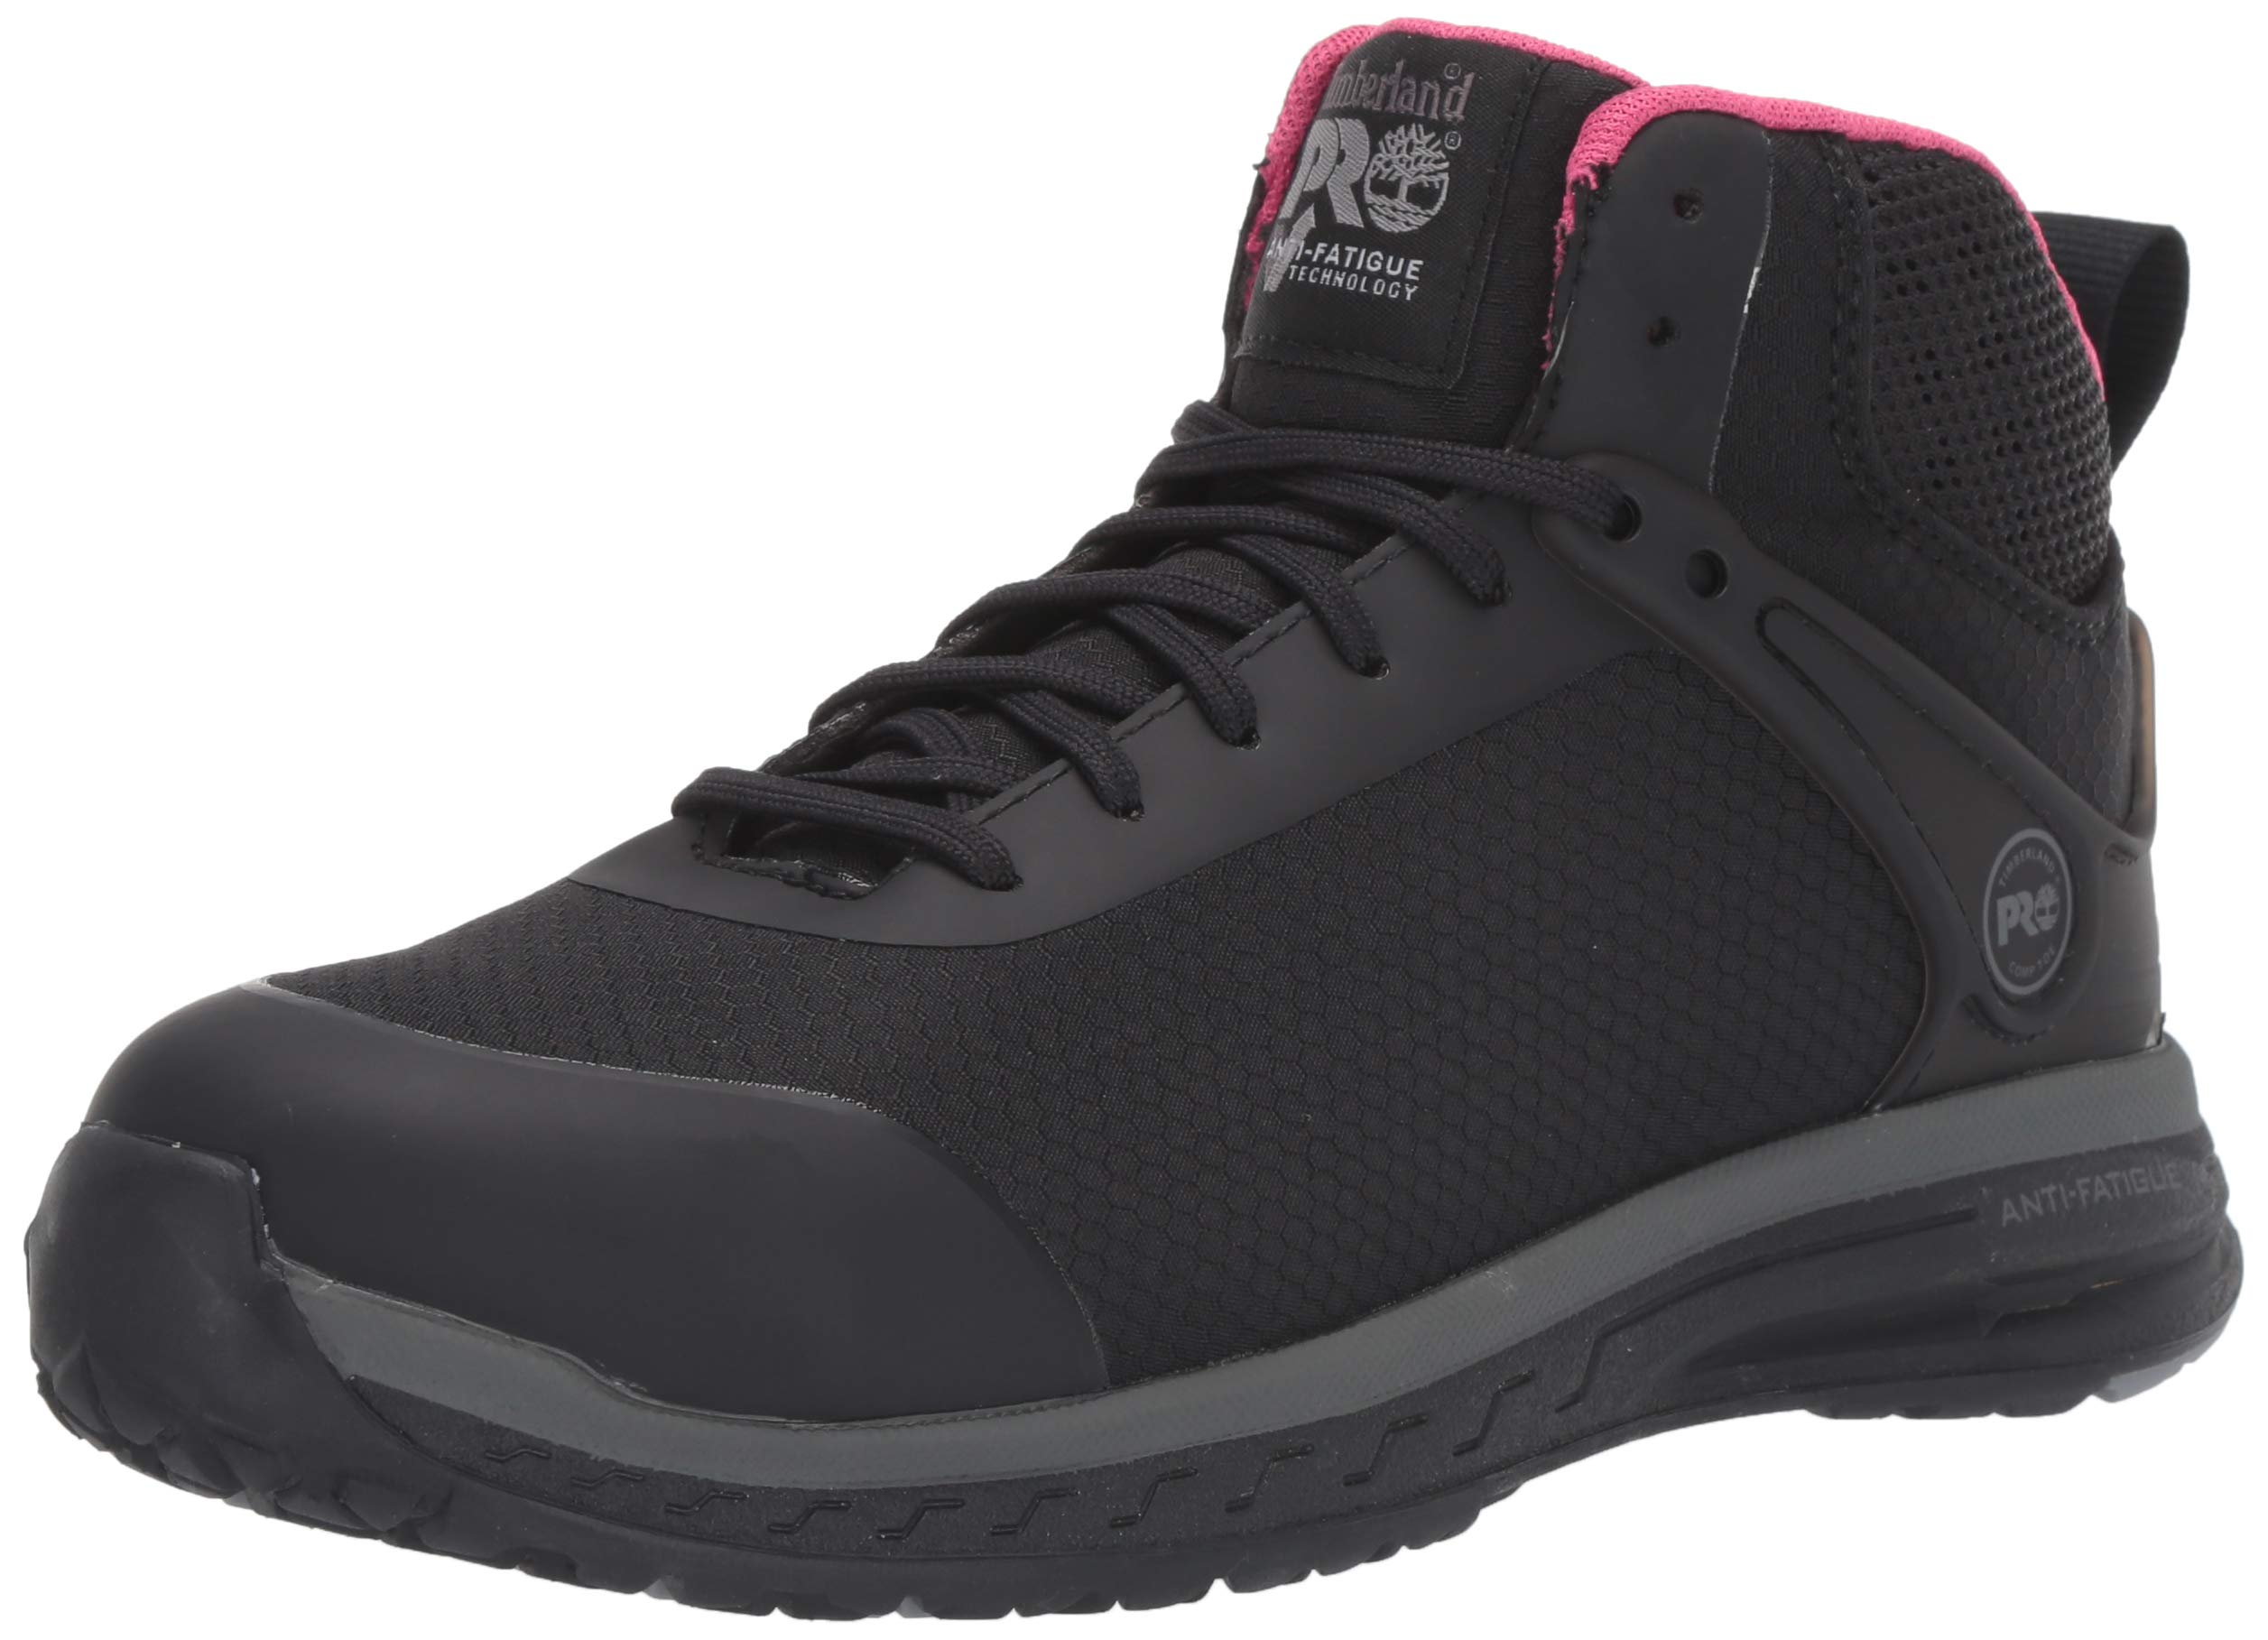 Timberland PRO Women's Drivetrain Mid Composite Toe SD35 Industrial Boot, Black, 8 M US by Timberland PRO